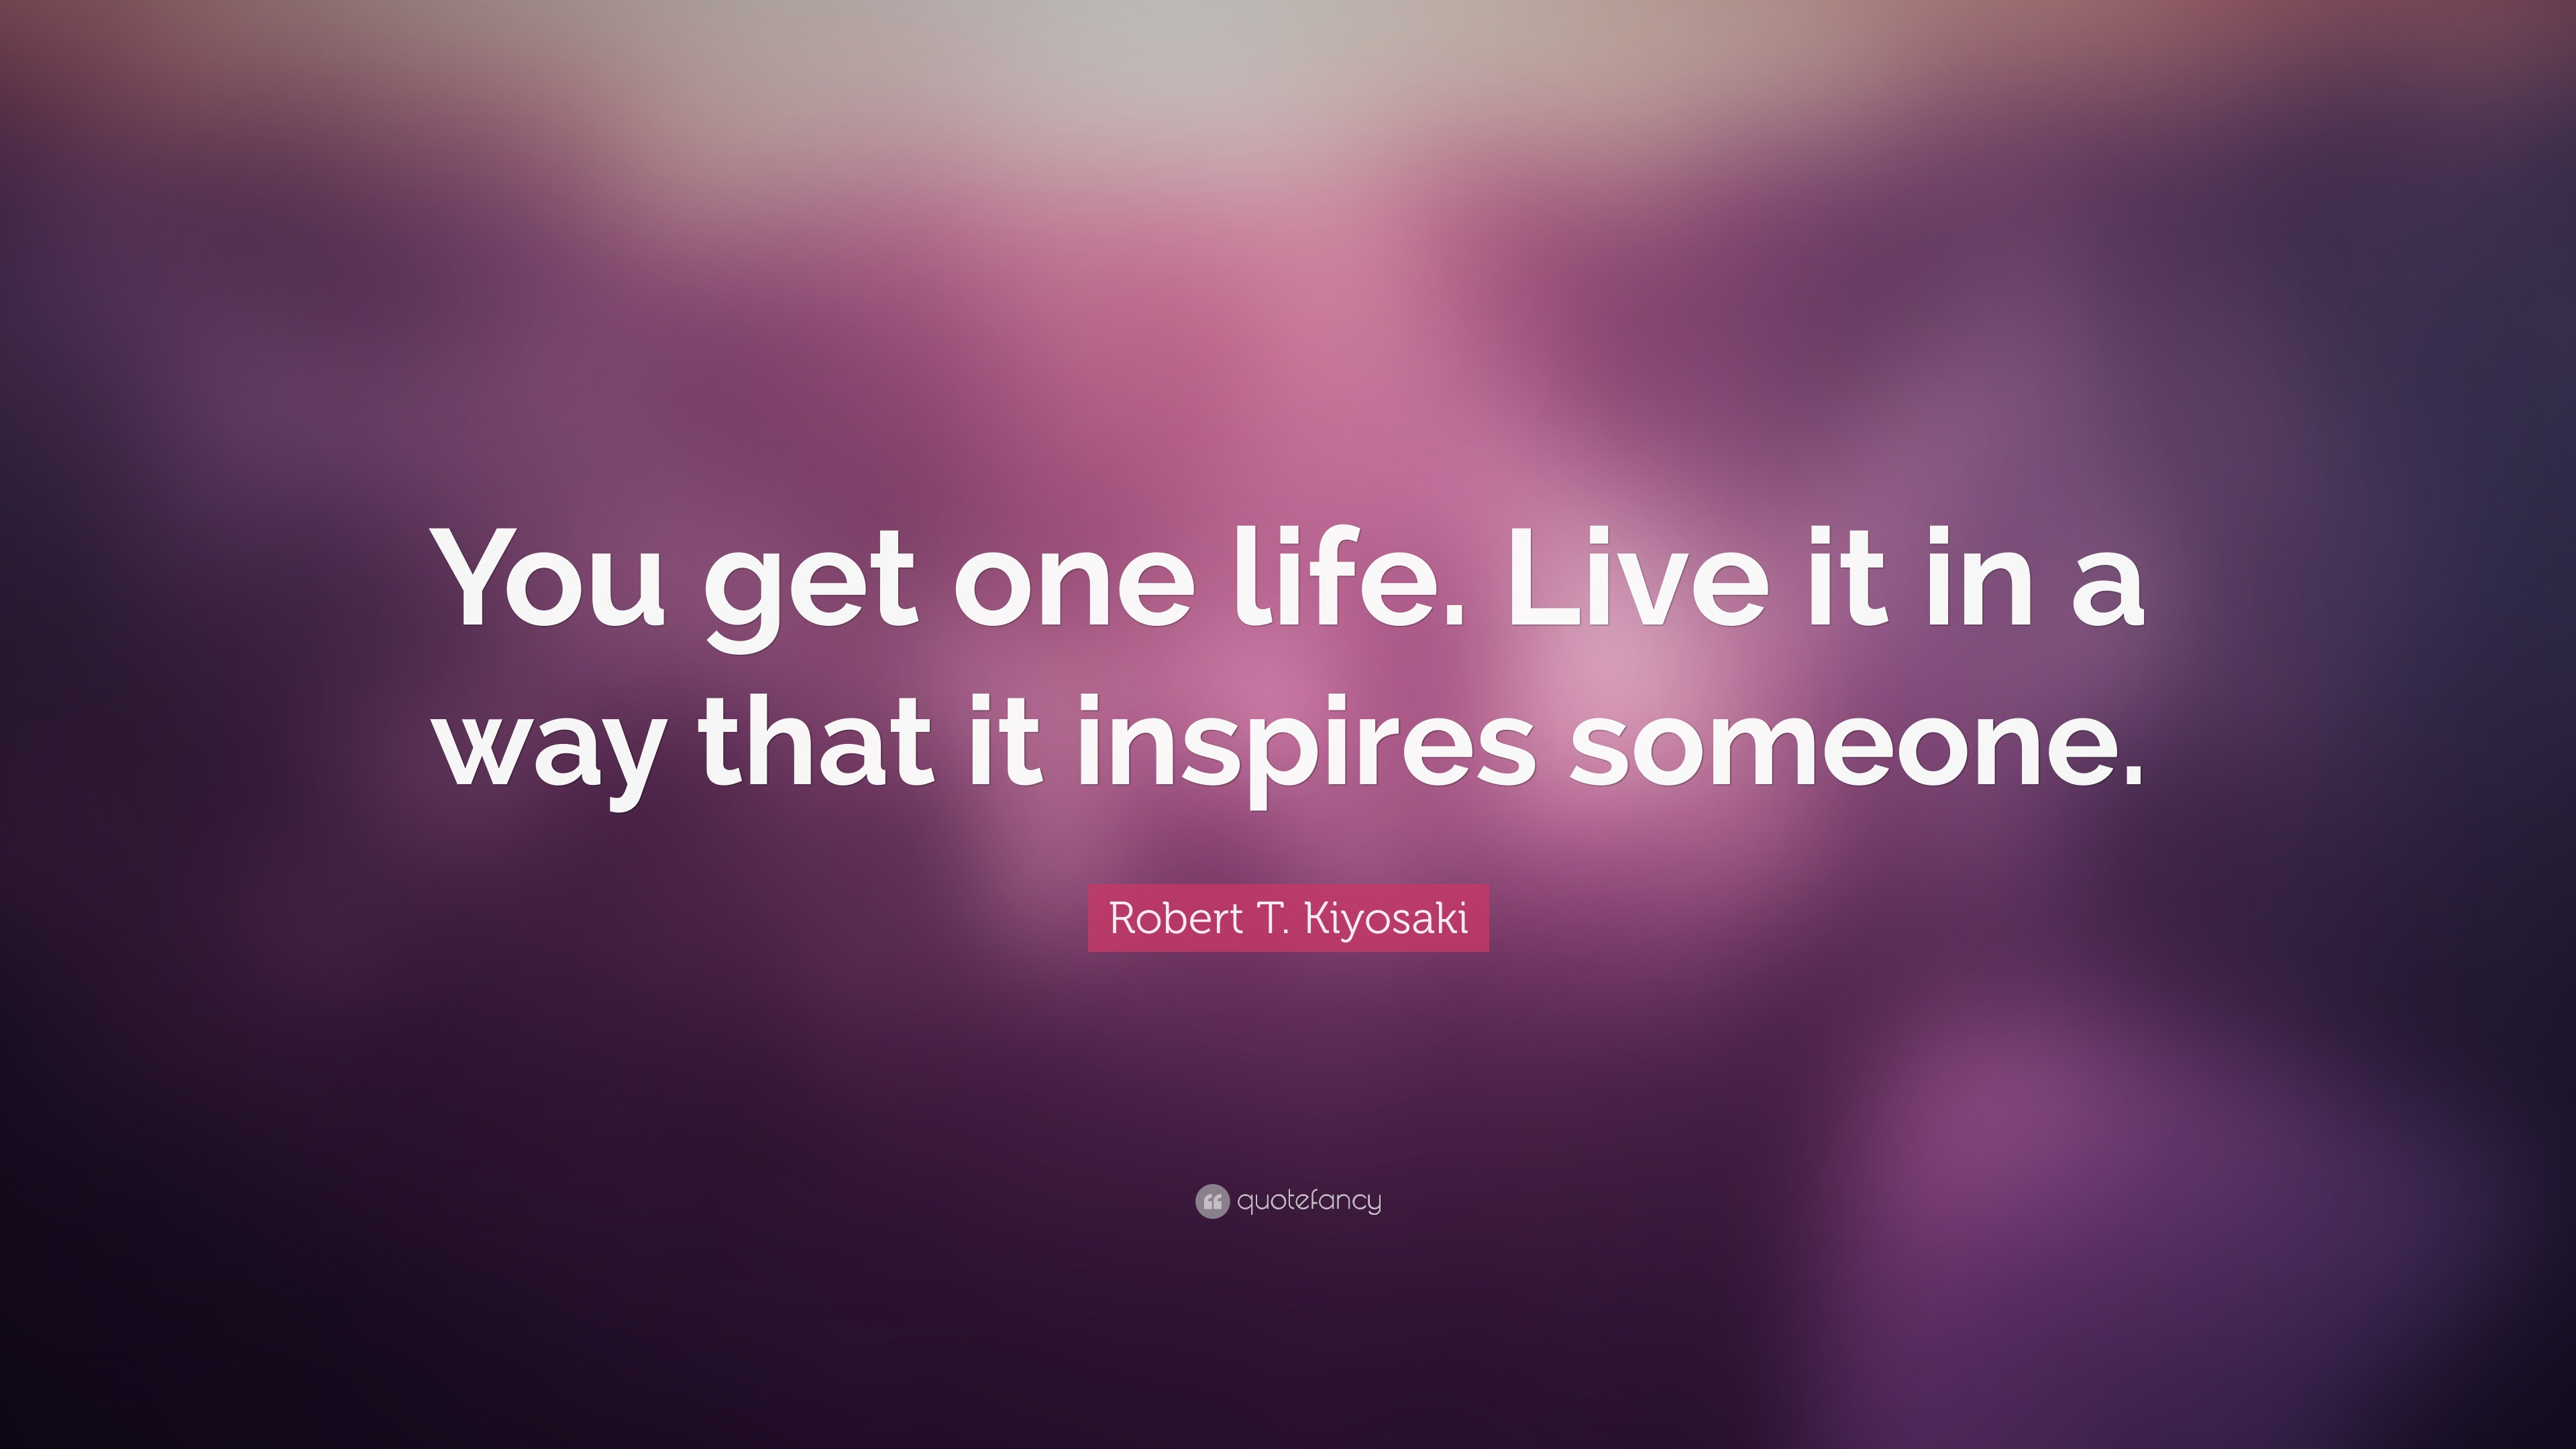 Robert T Kiyosaki Quote You Get One Life Live It In A Way That